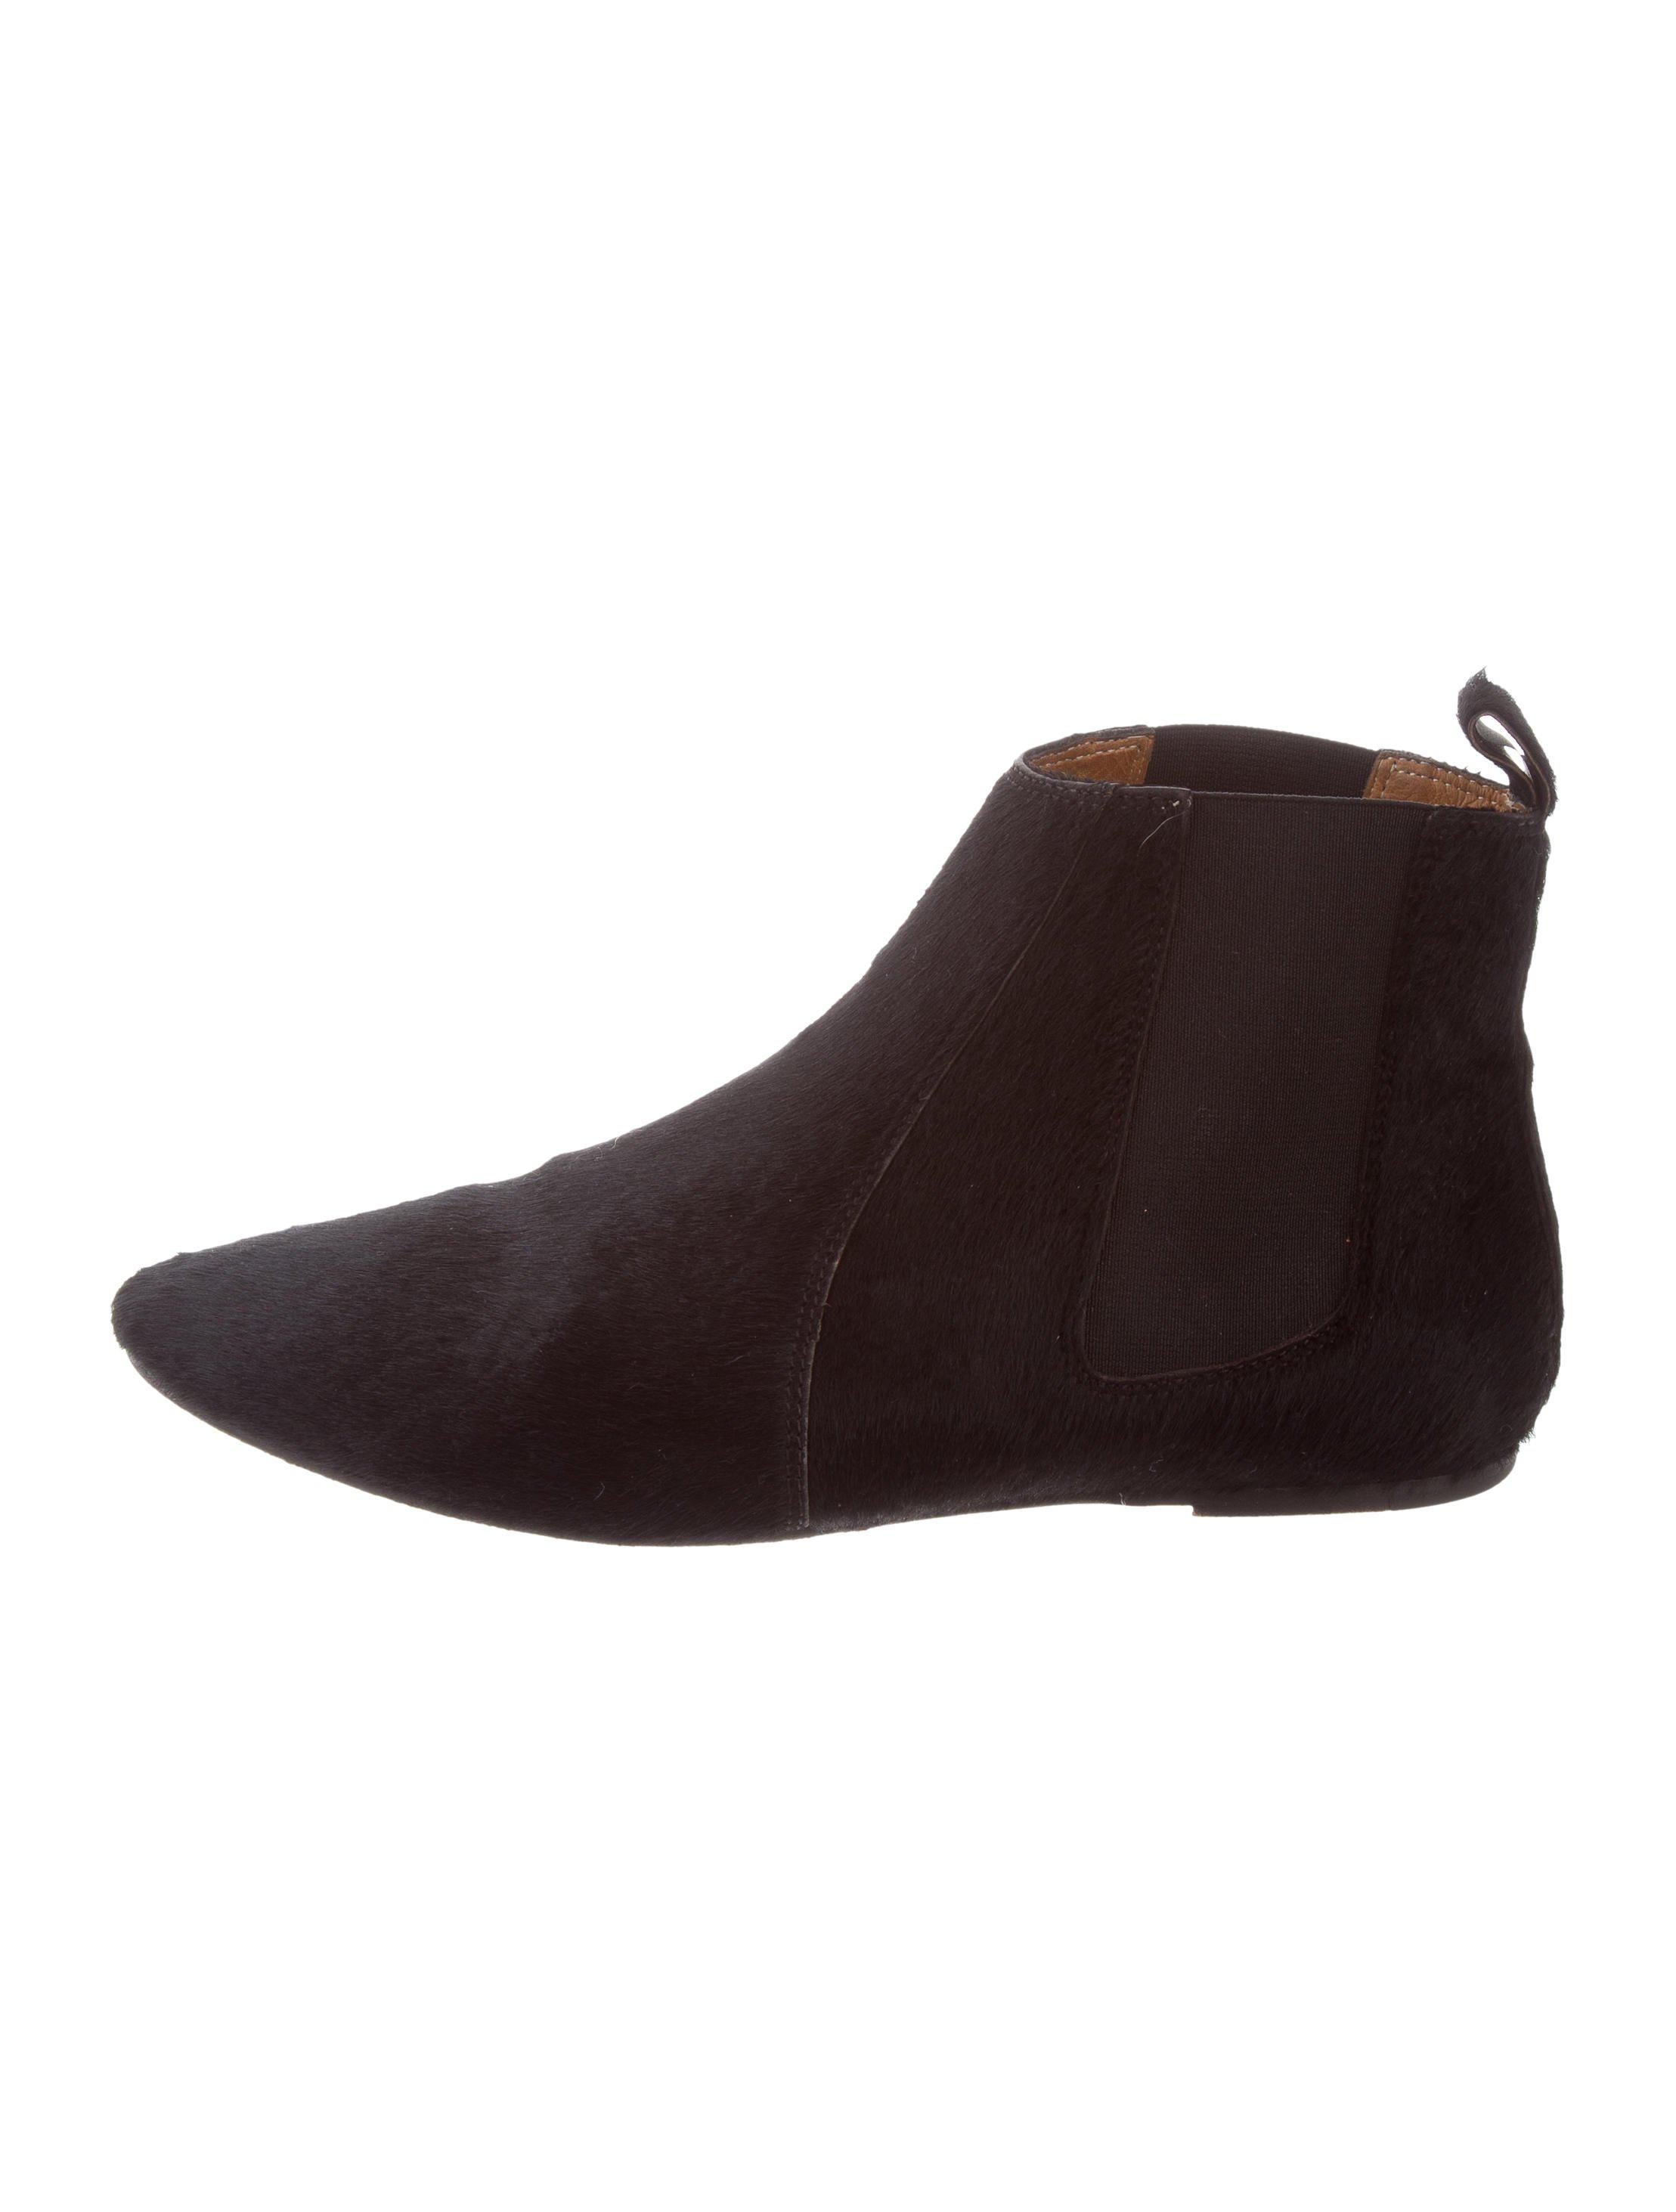 Isabel Marant Round-Toe Ponyhair Booties clearance browse high quality buy online free shipping find great latest collections sale online jB2OZ